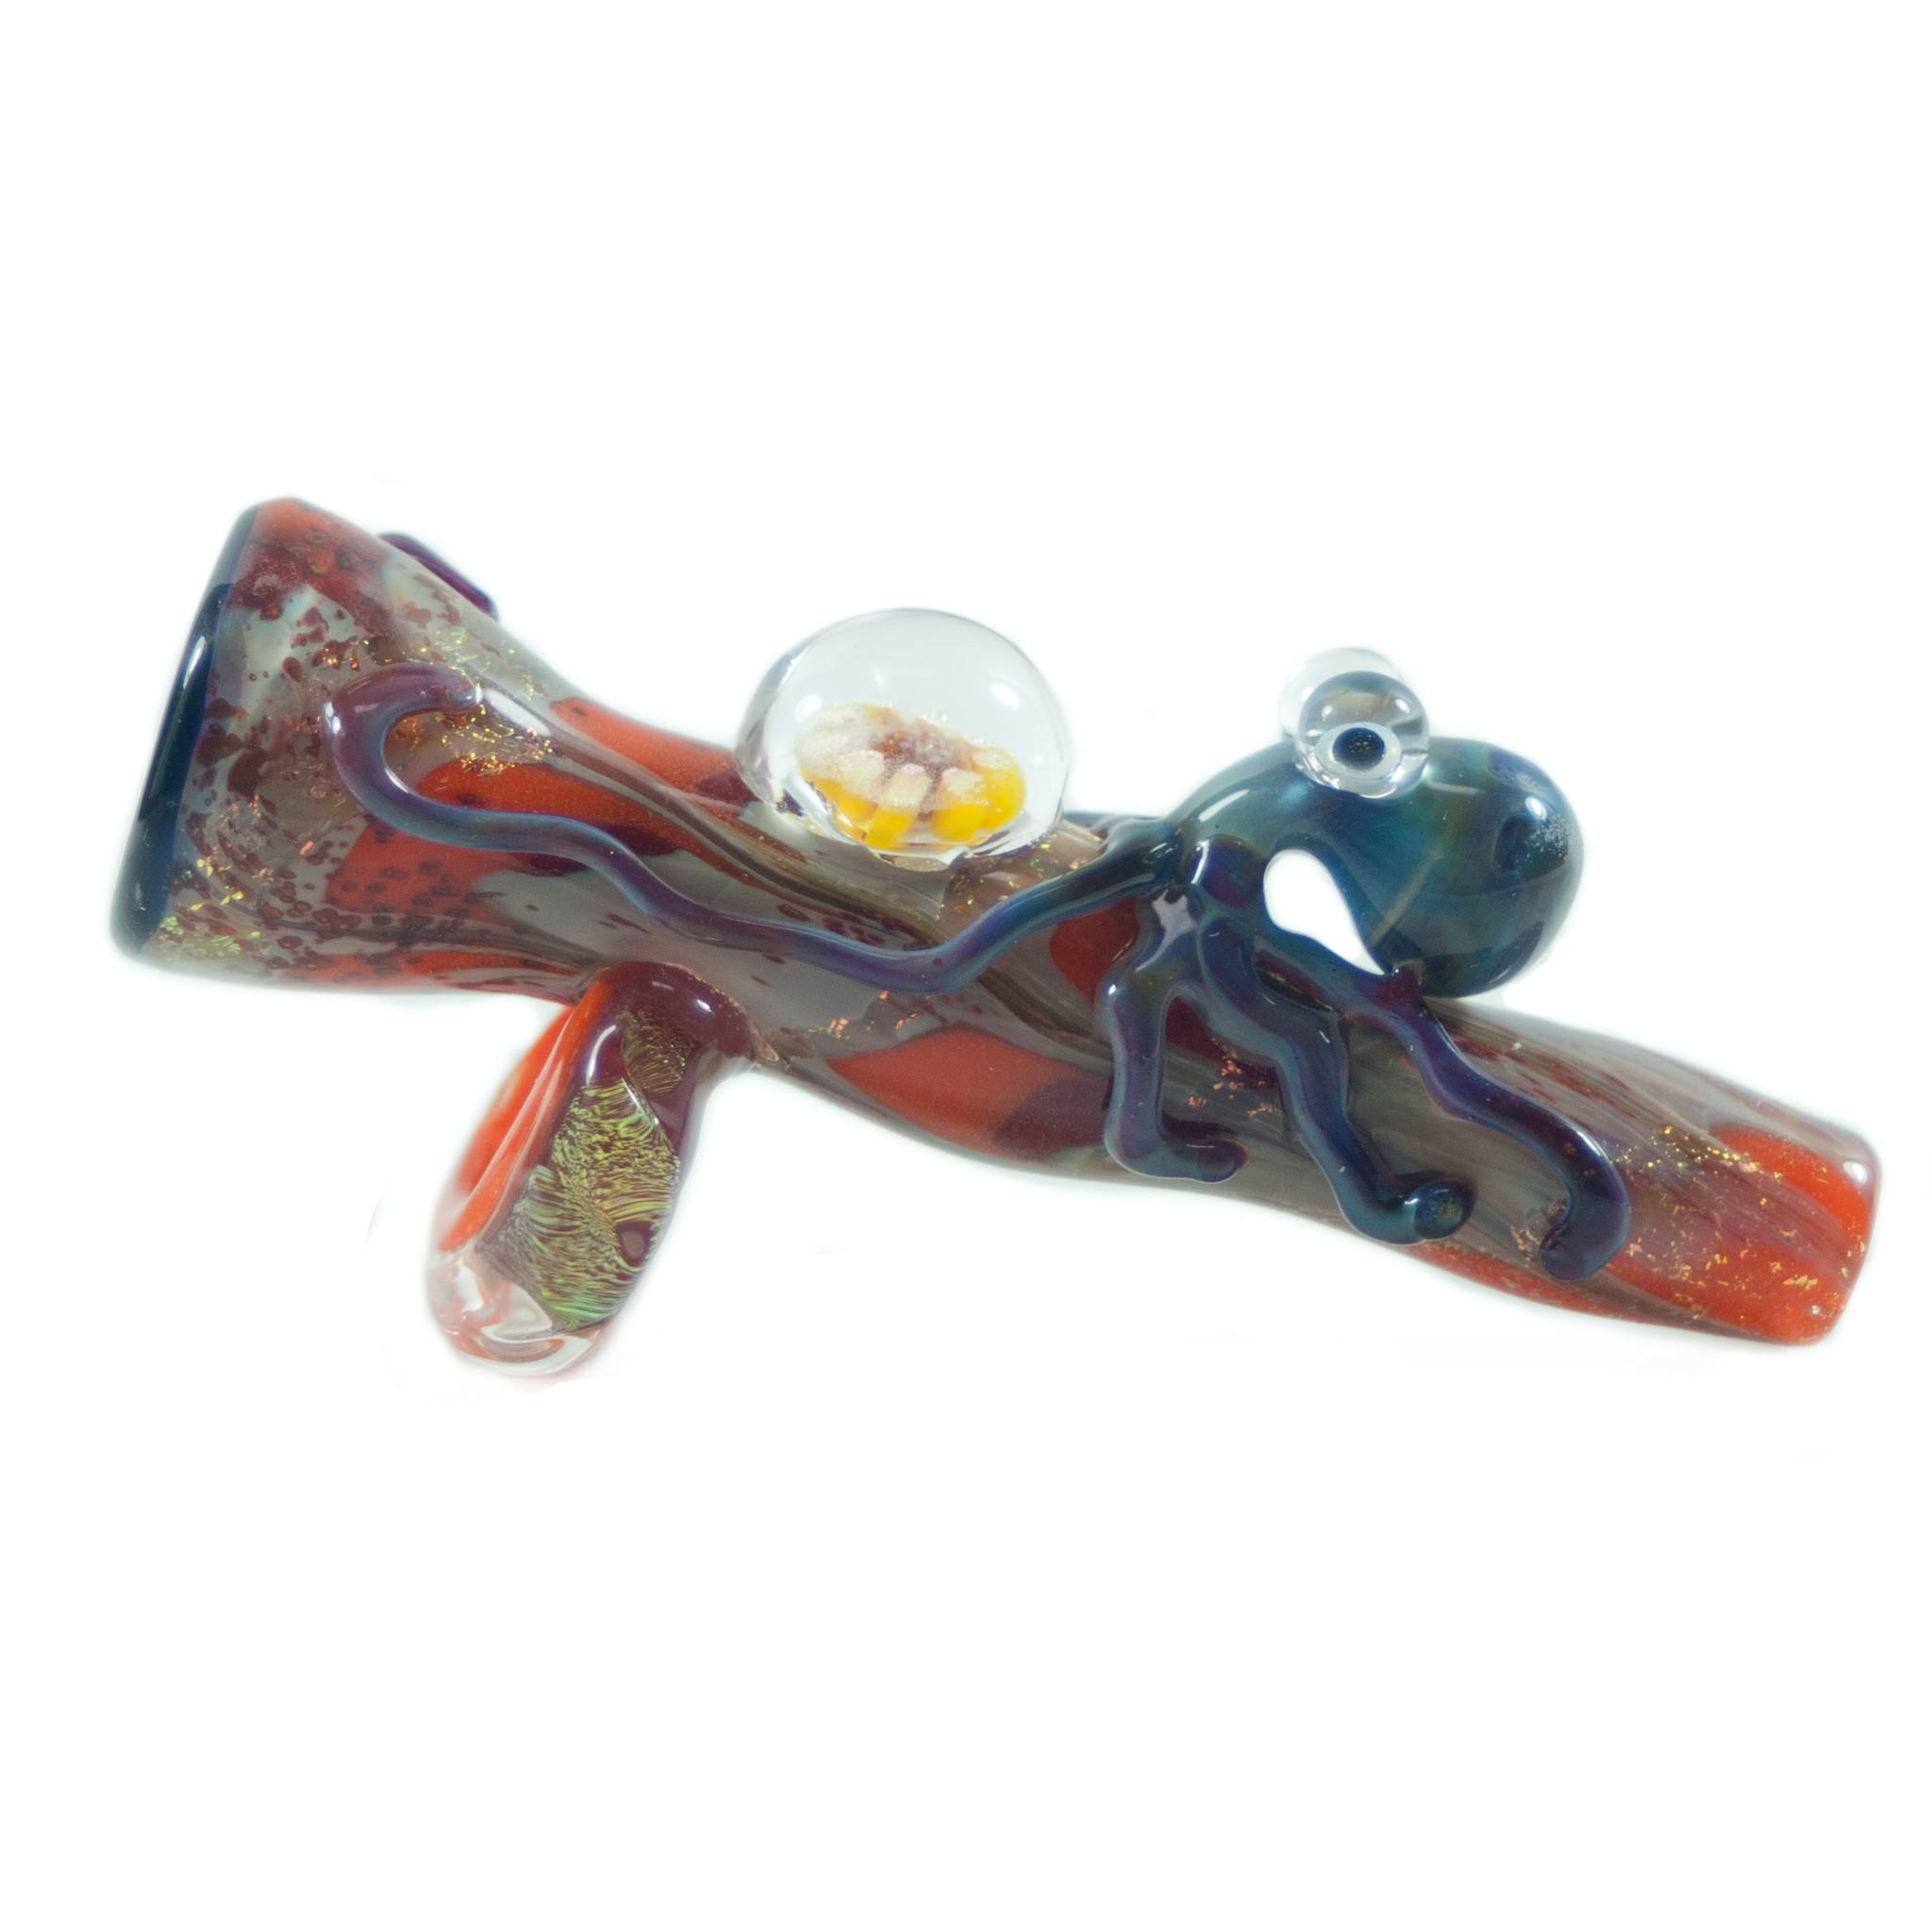 Empire Glassworks - Octopus Chillum with Glass Opal